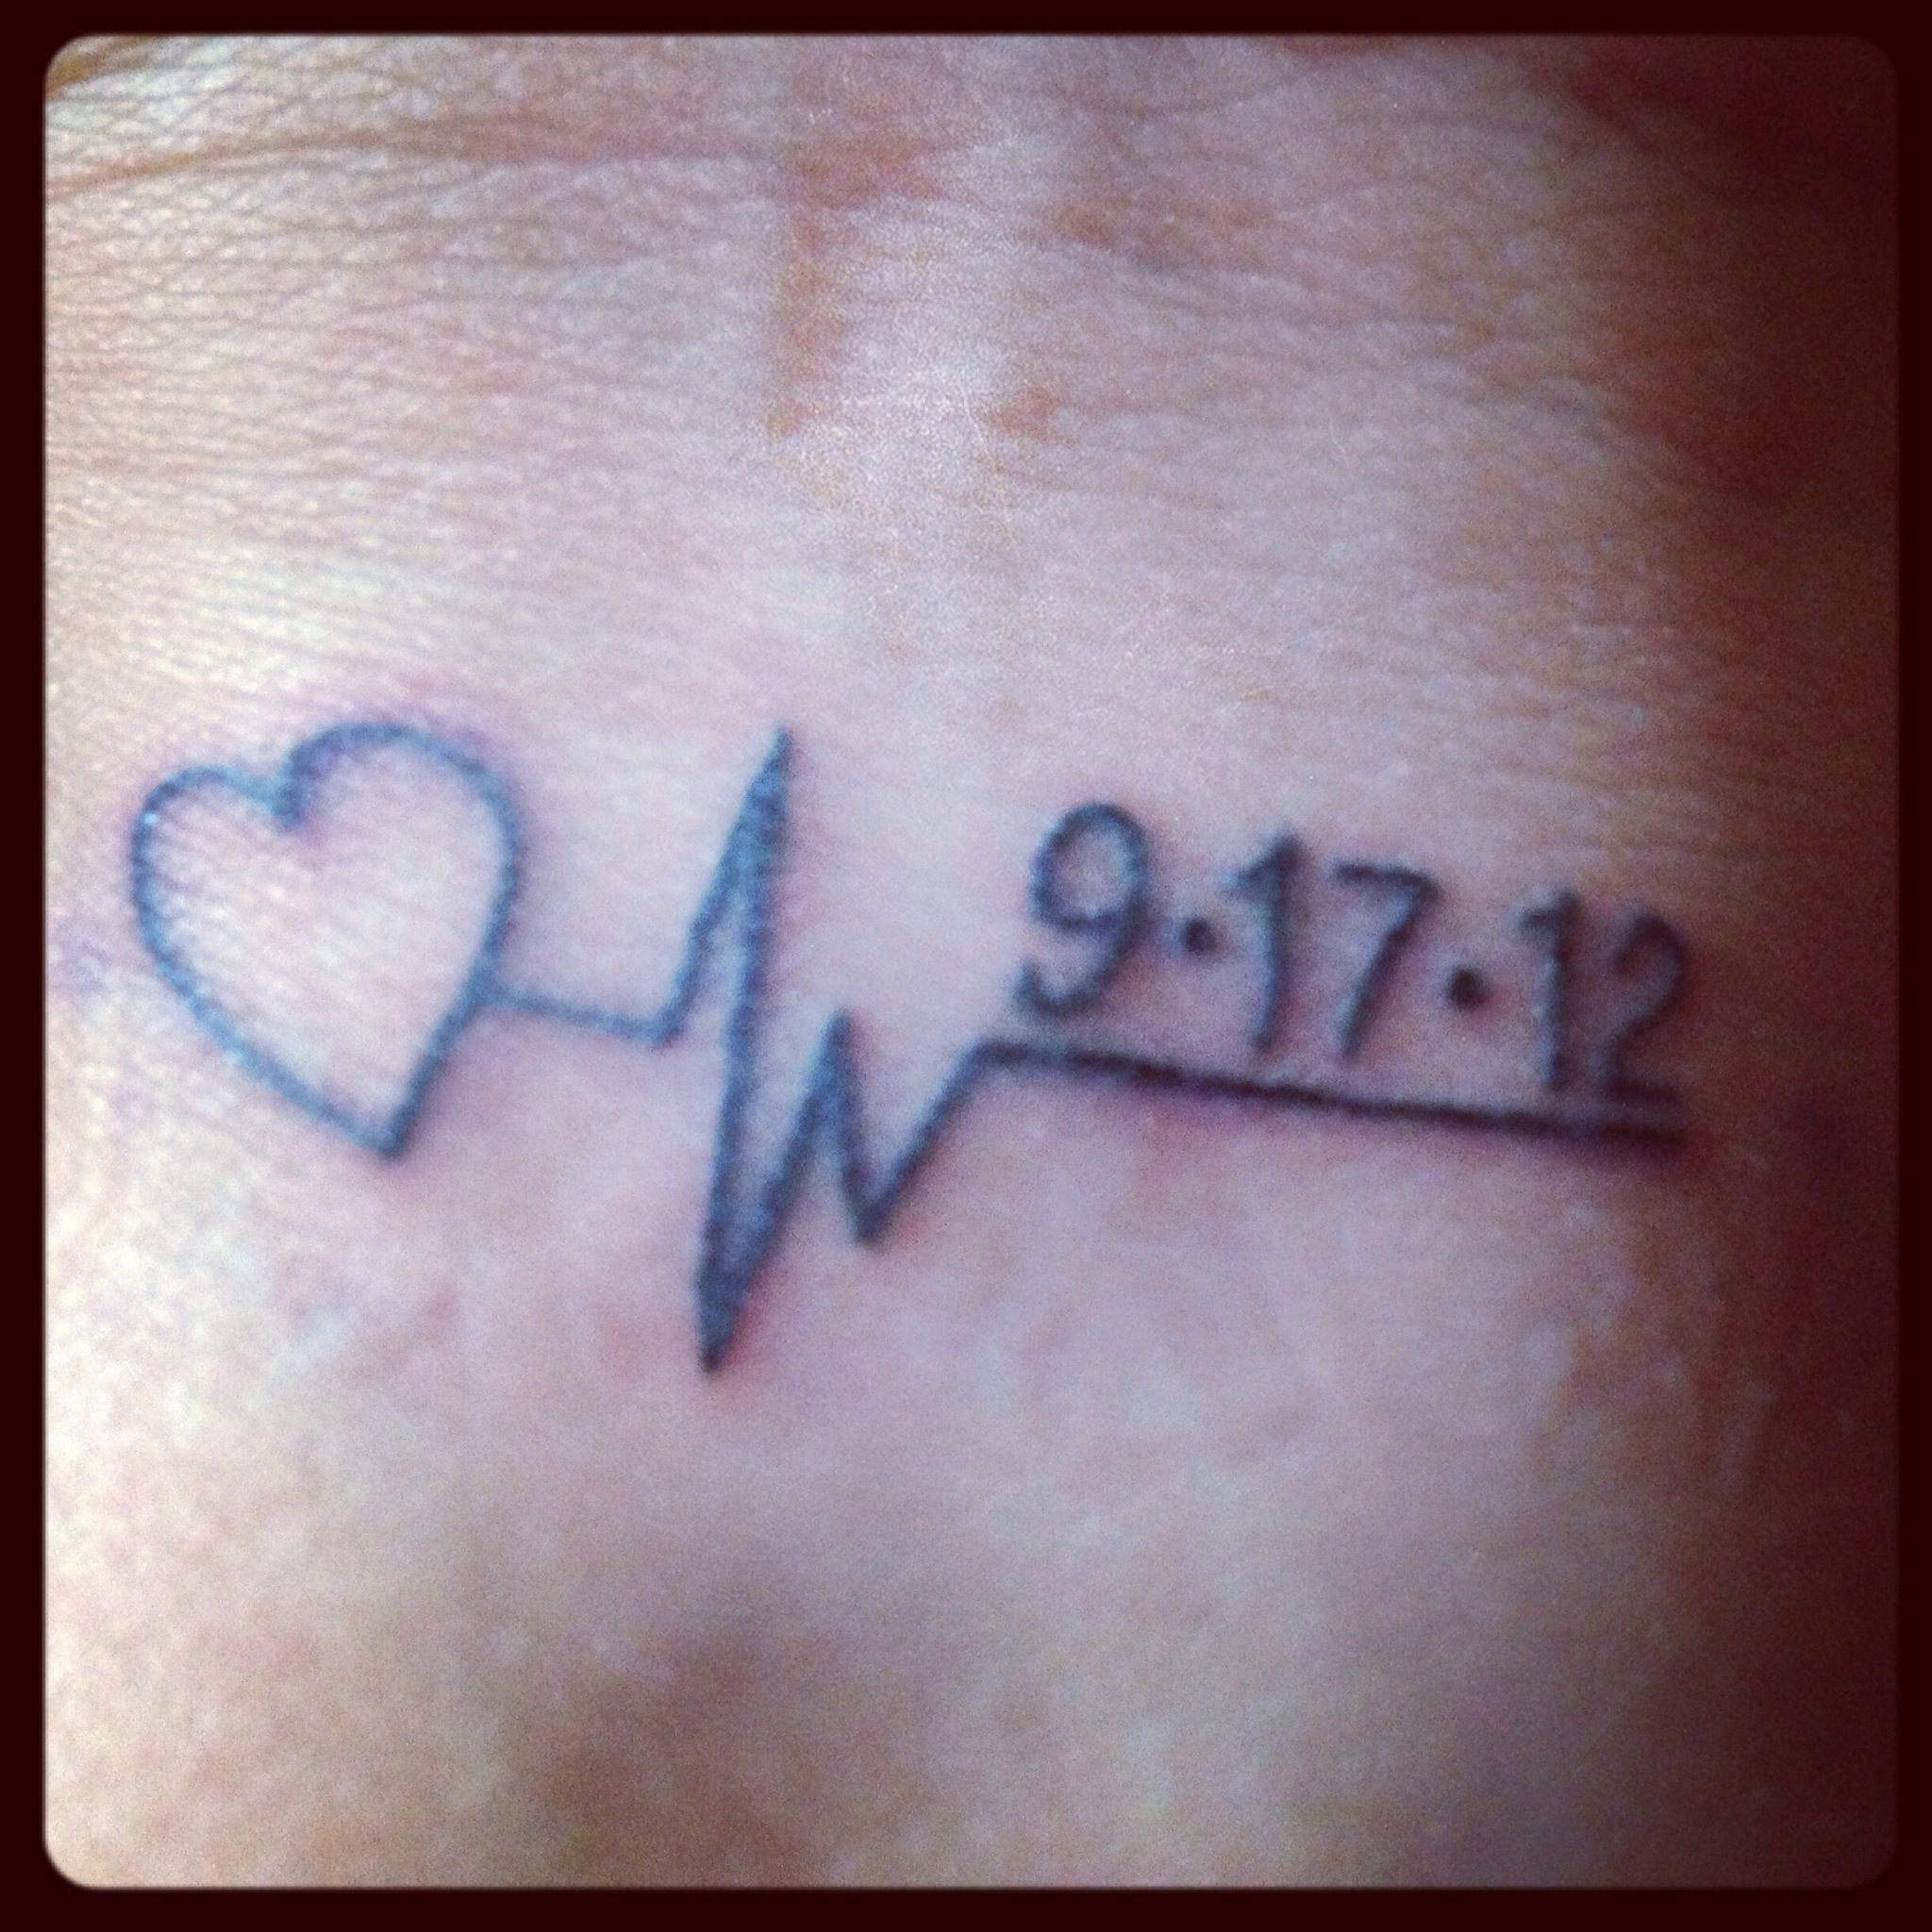 My Dad's Last Heartbeat And Date He